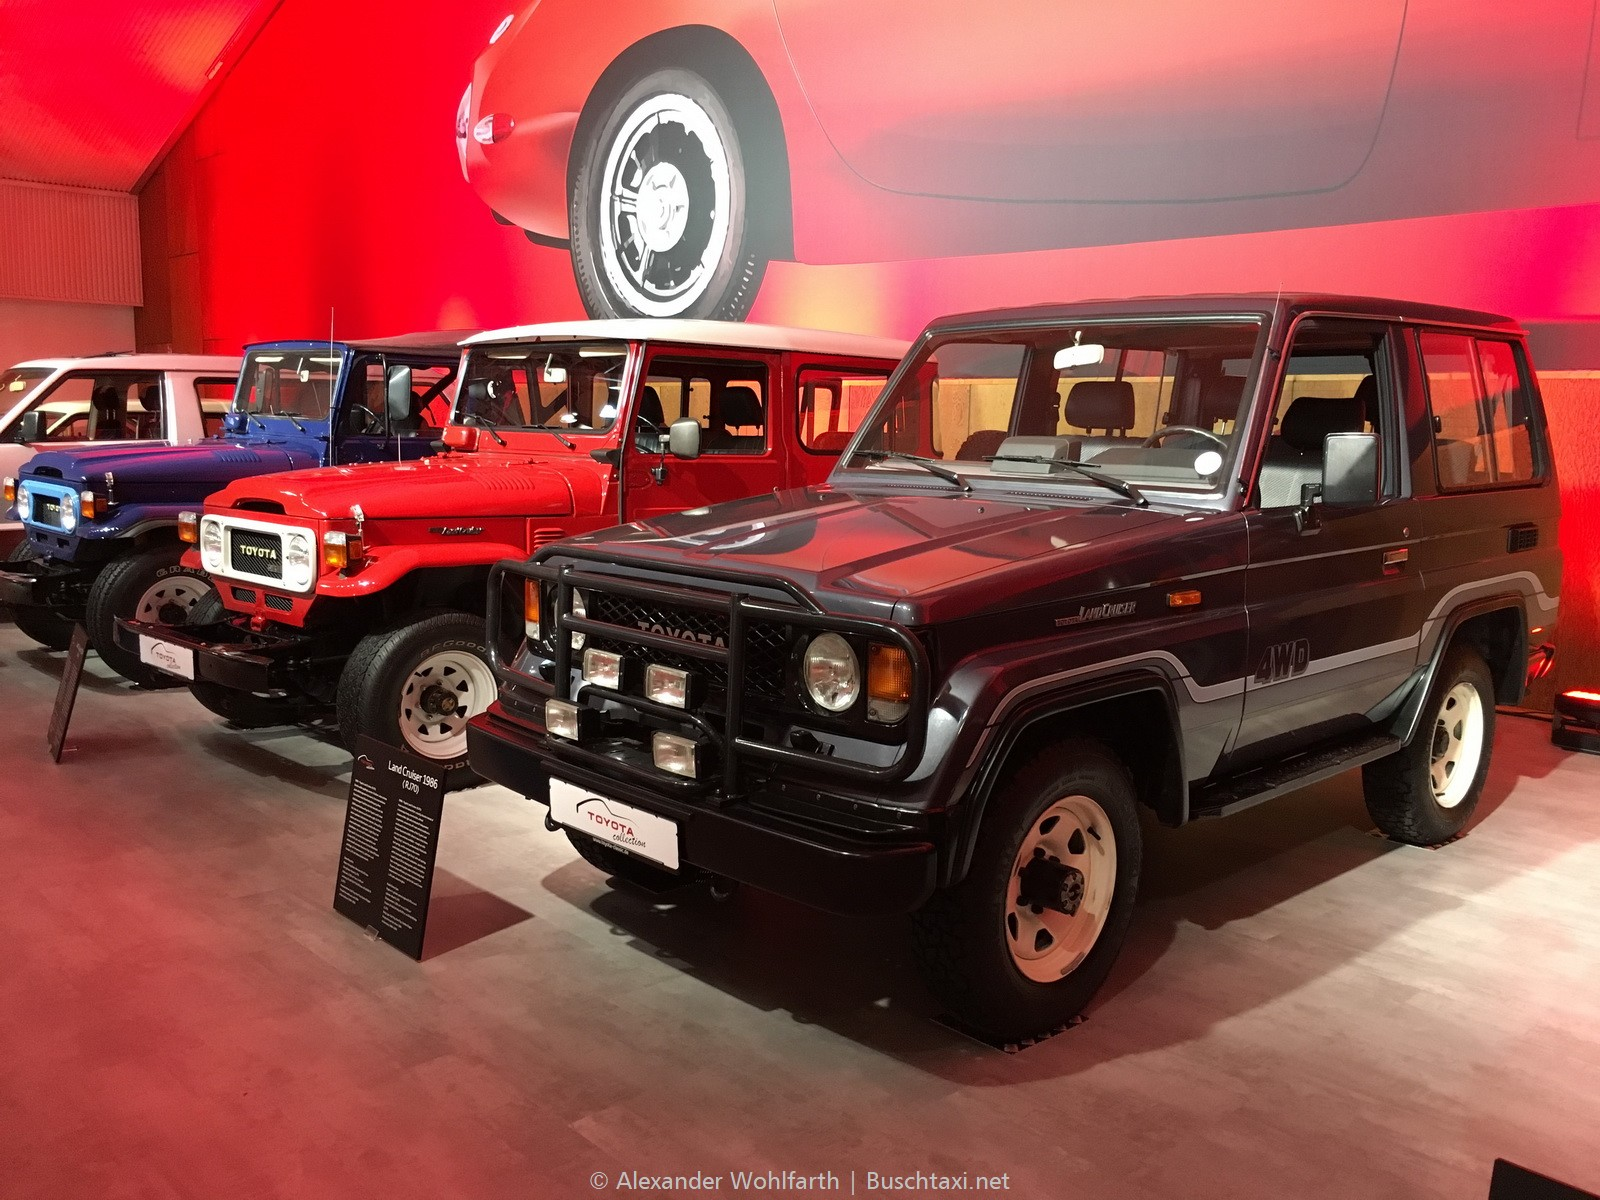 2017-11-23 toyota collection 13